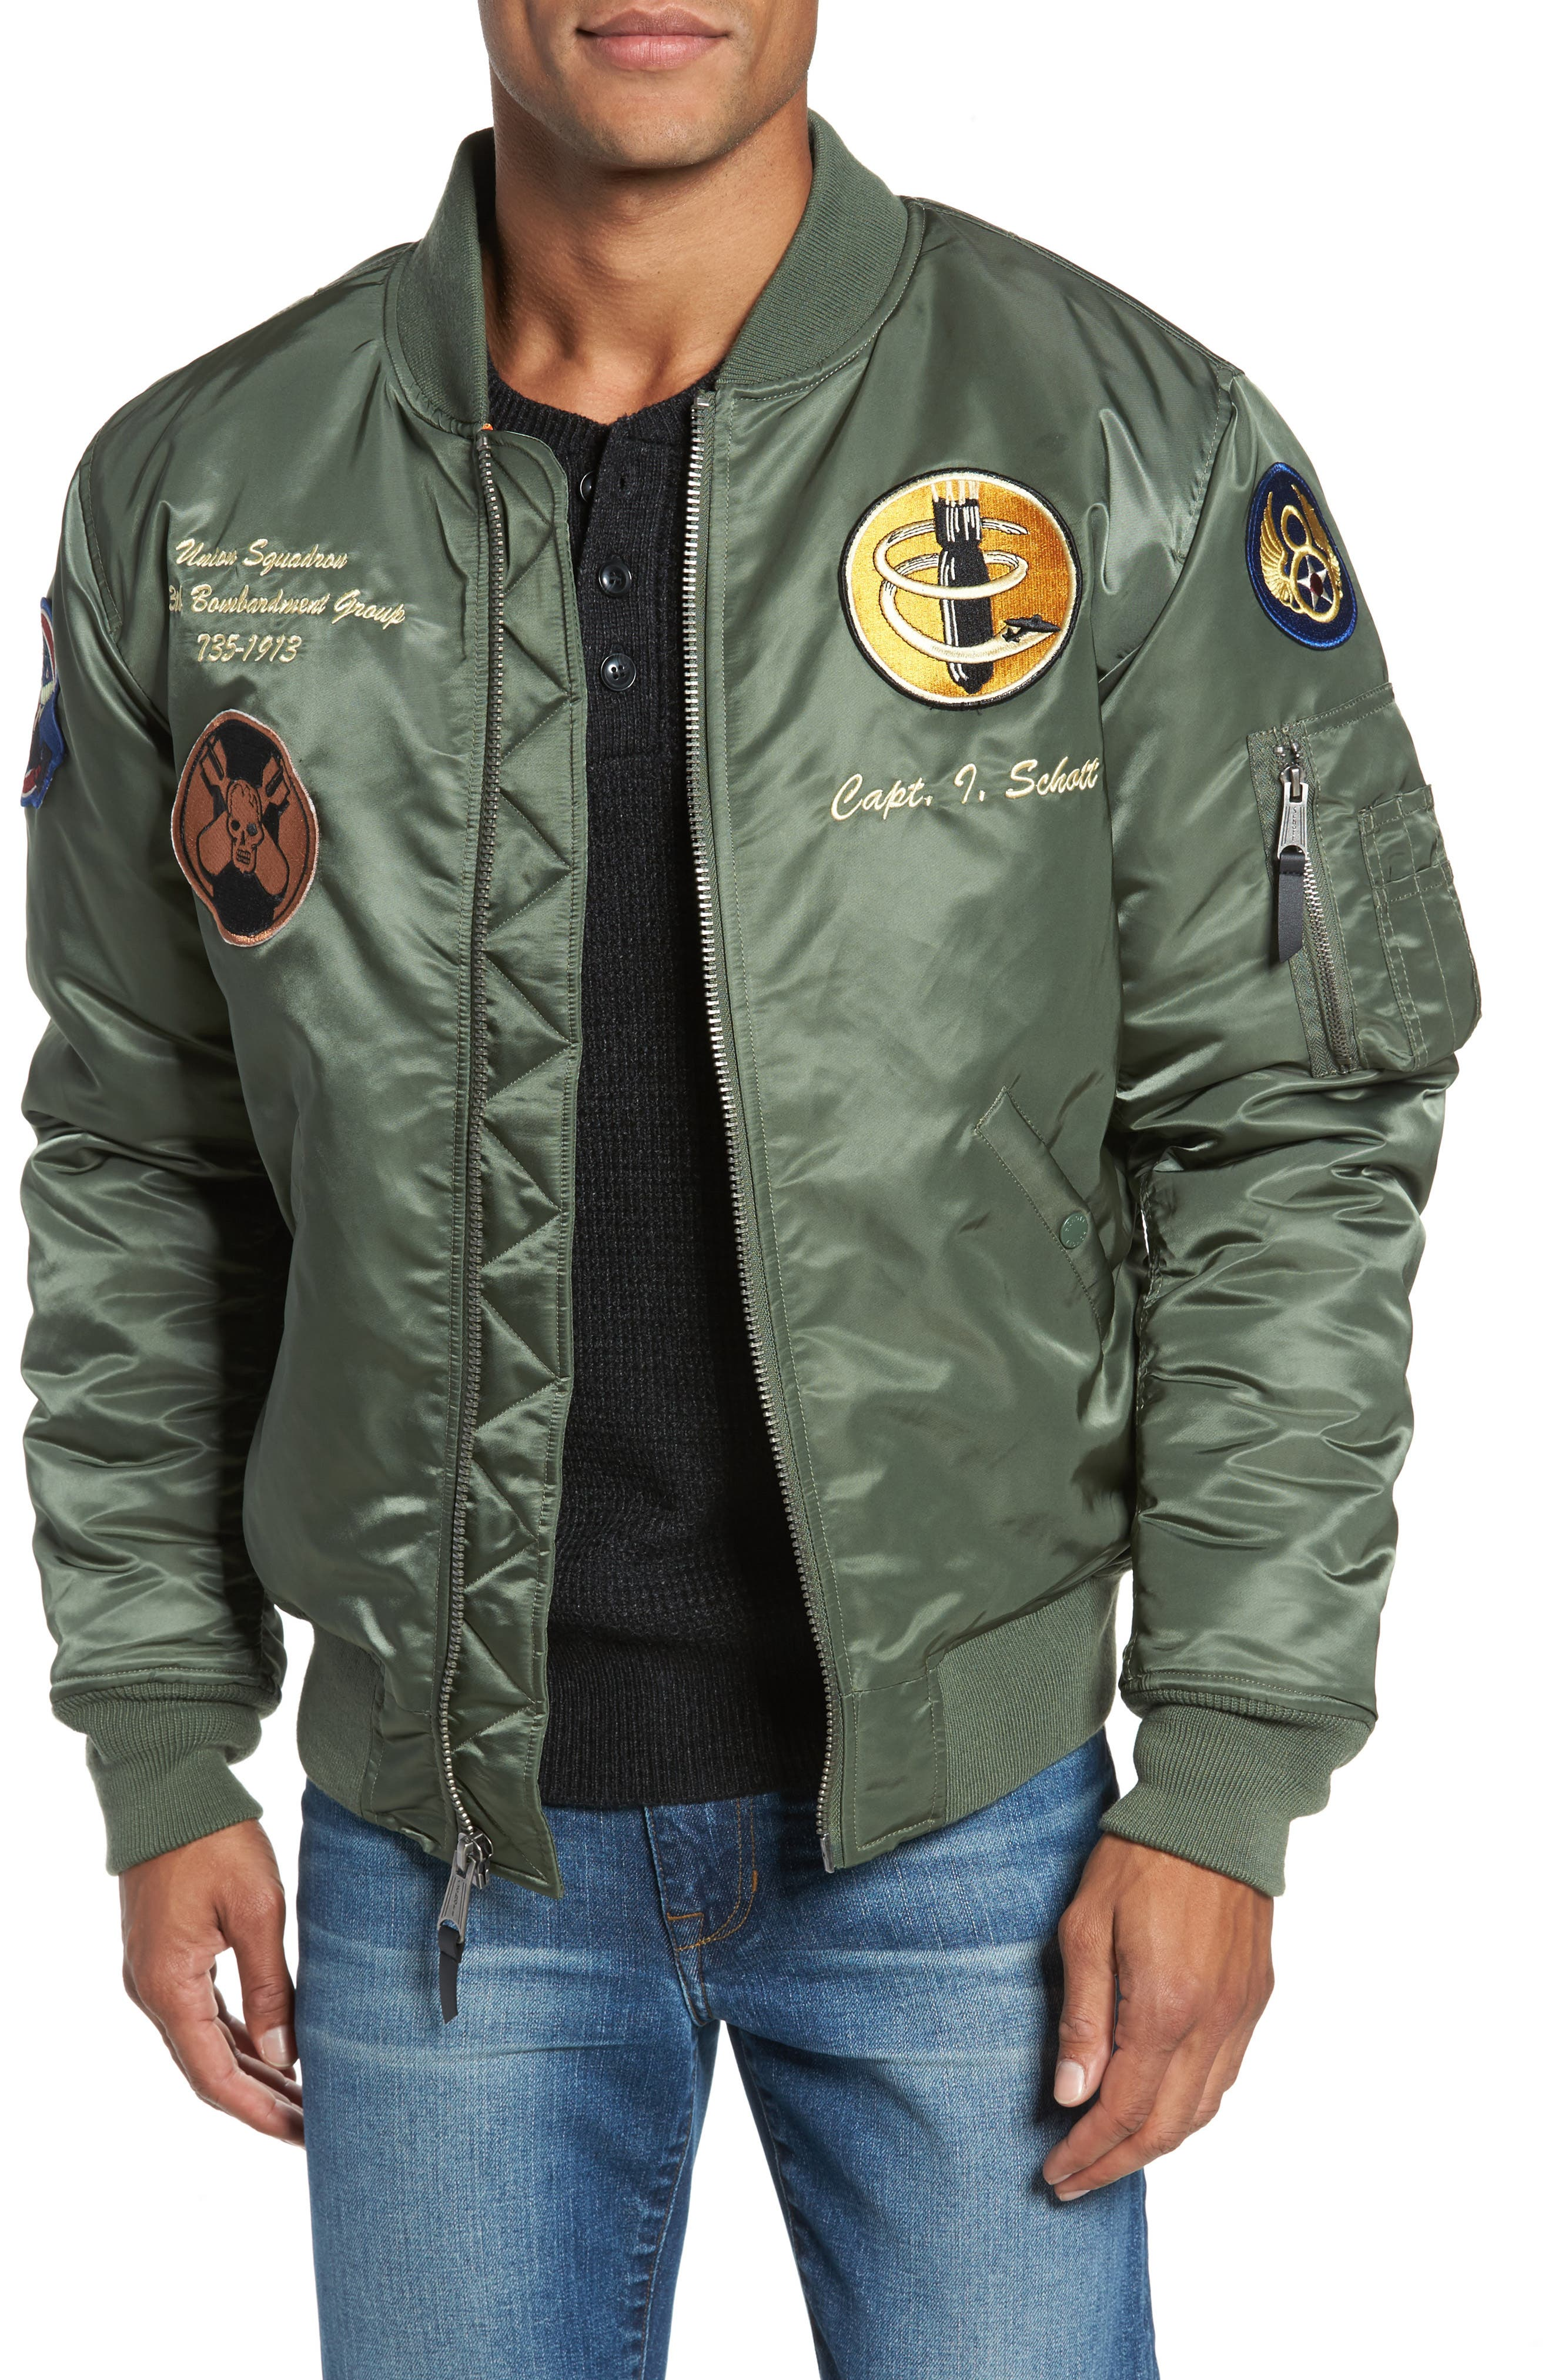 Highly Decorated Embroidered Flight Jacket,                             Main thumbnail 2, color,